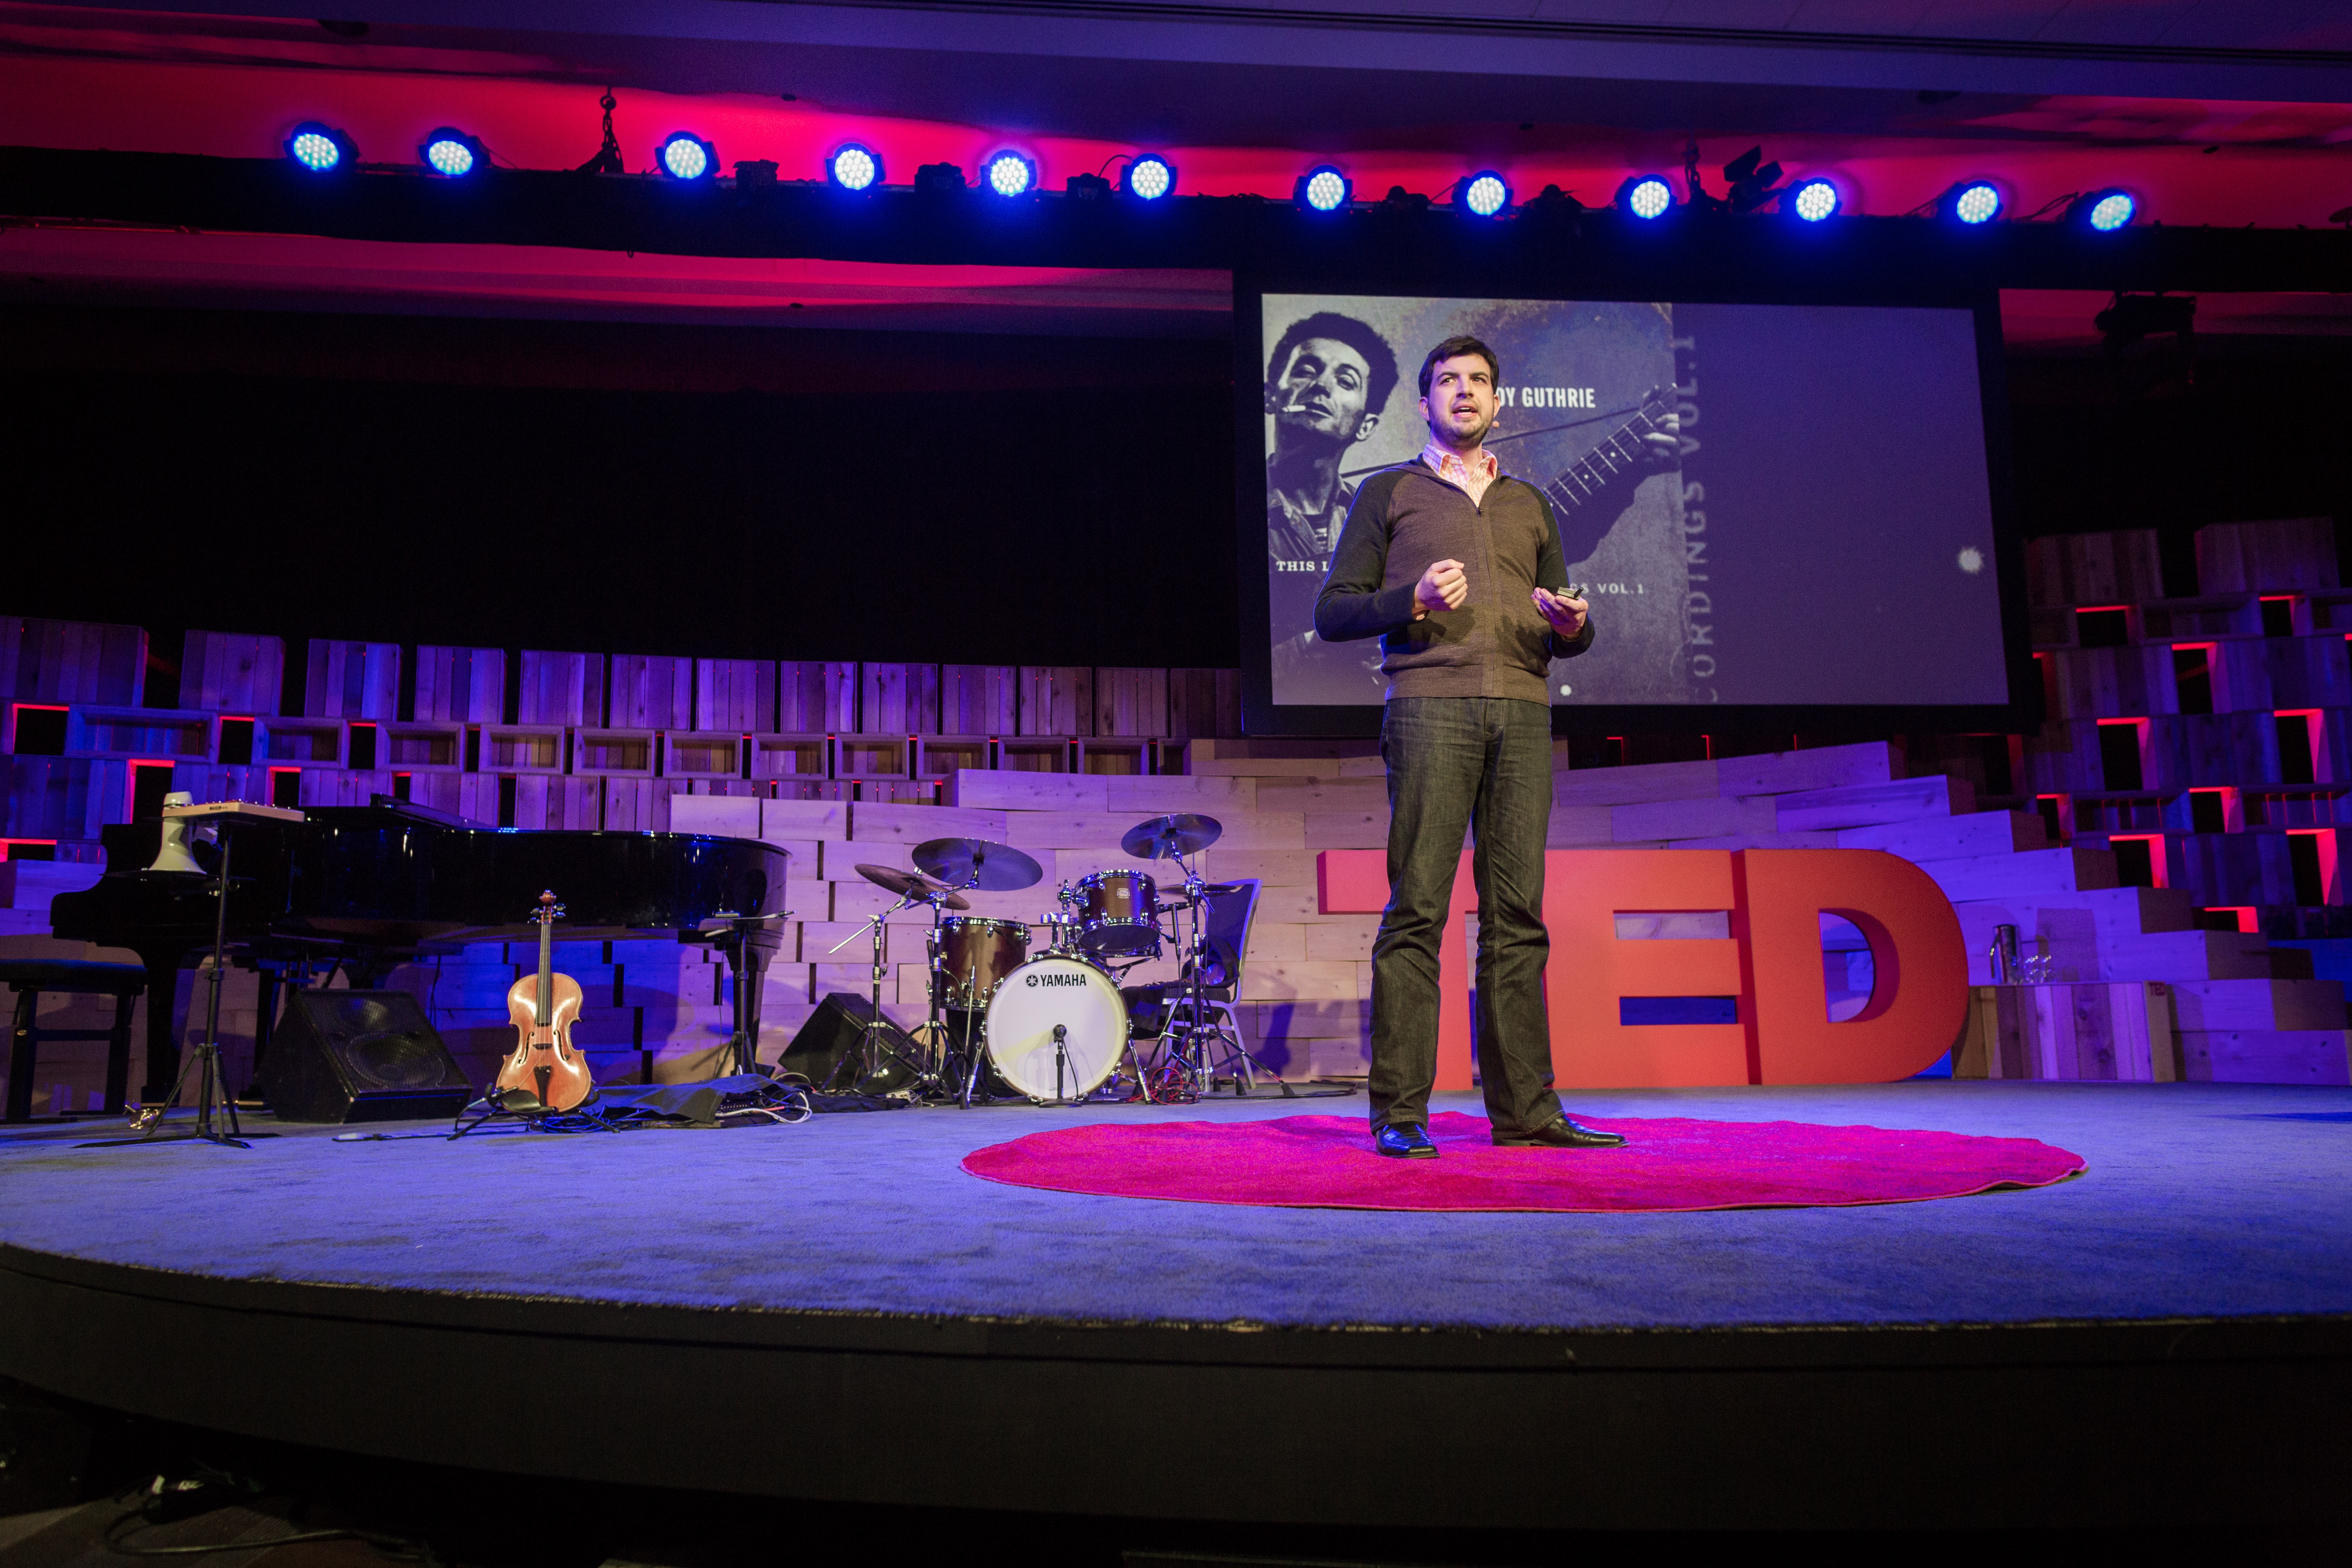 Dan Visconti named a 2014 TED Fellow and will deliver a TED talk at the March 2014 conference in Vancouver, BC.